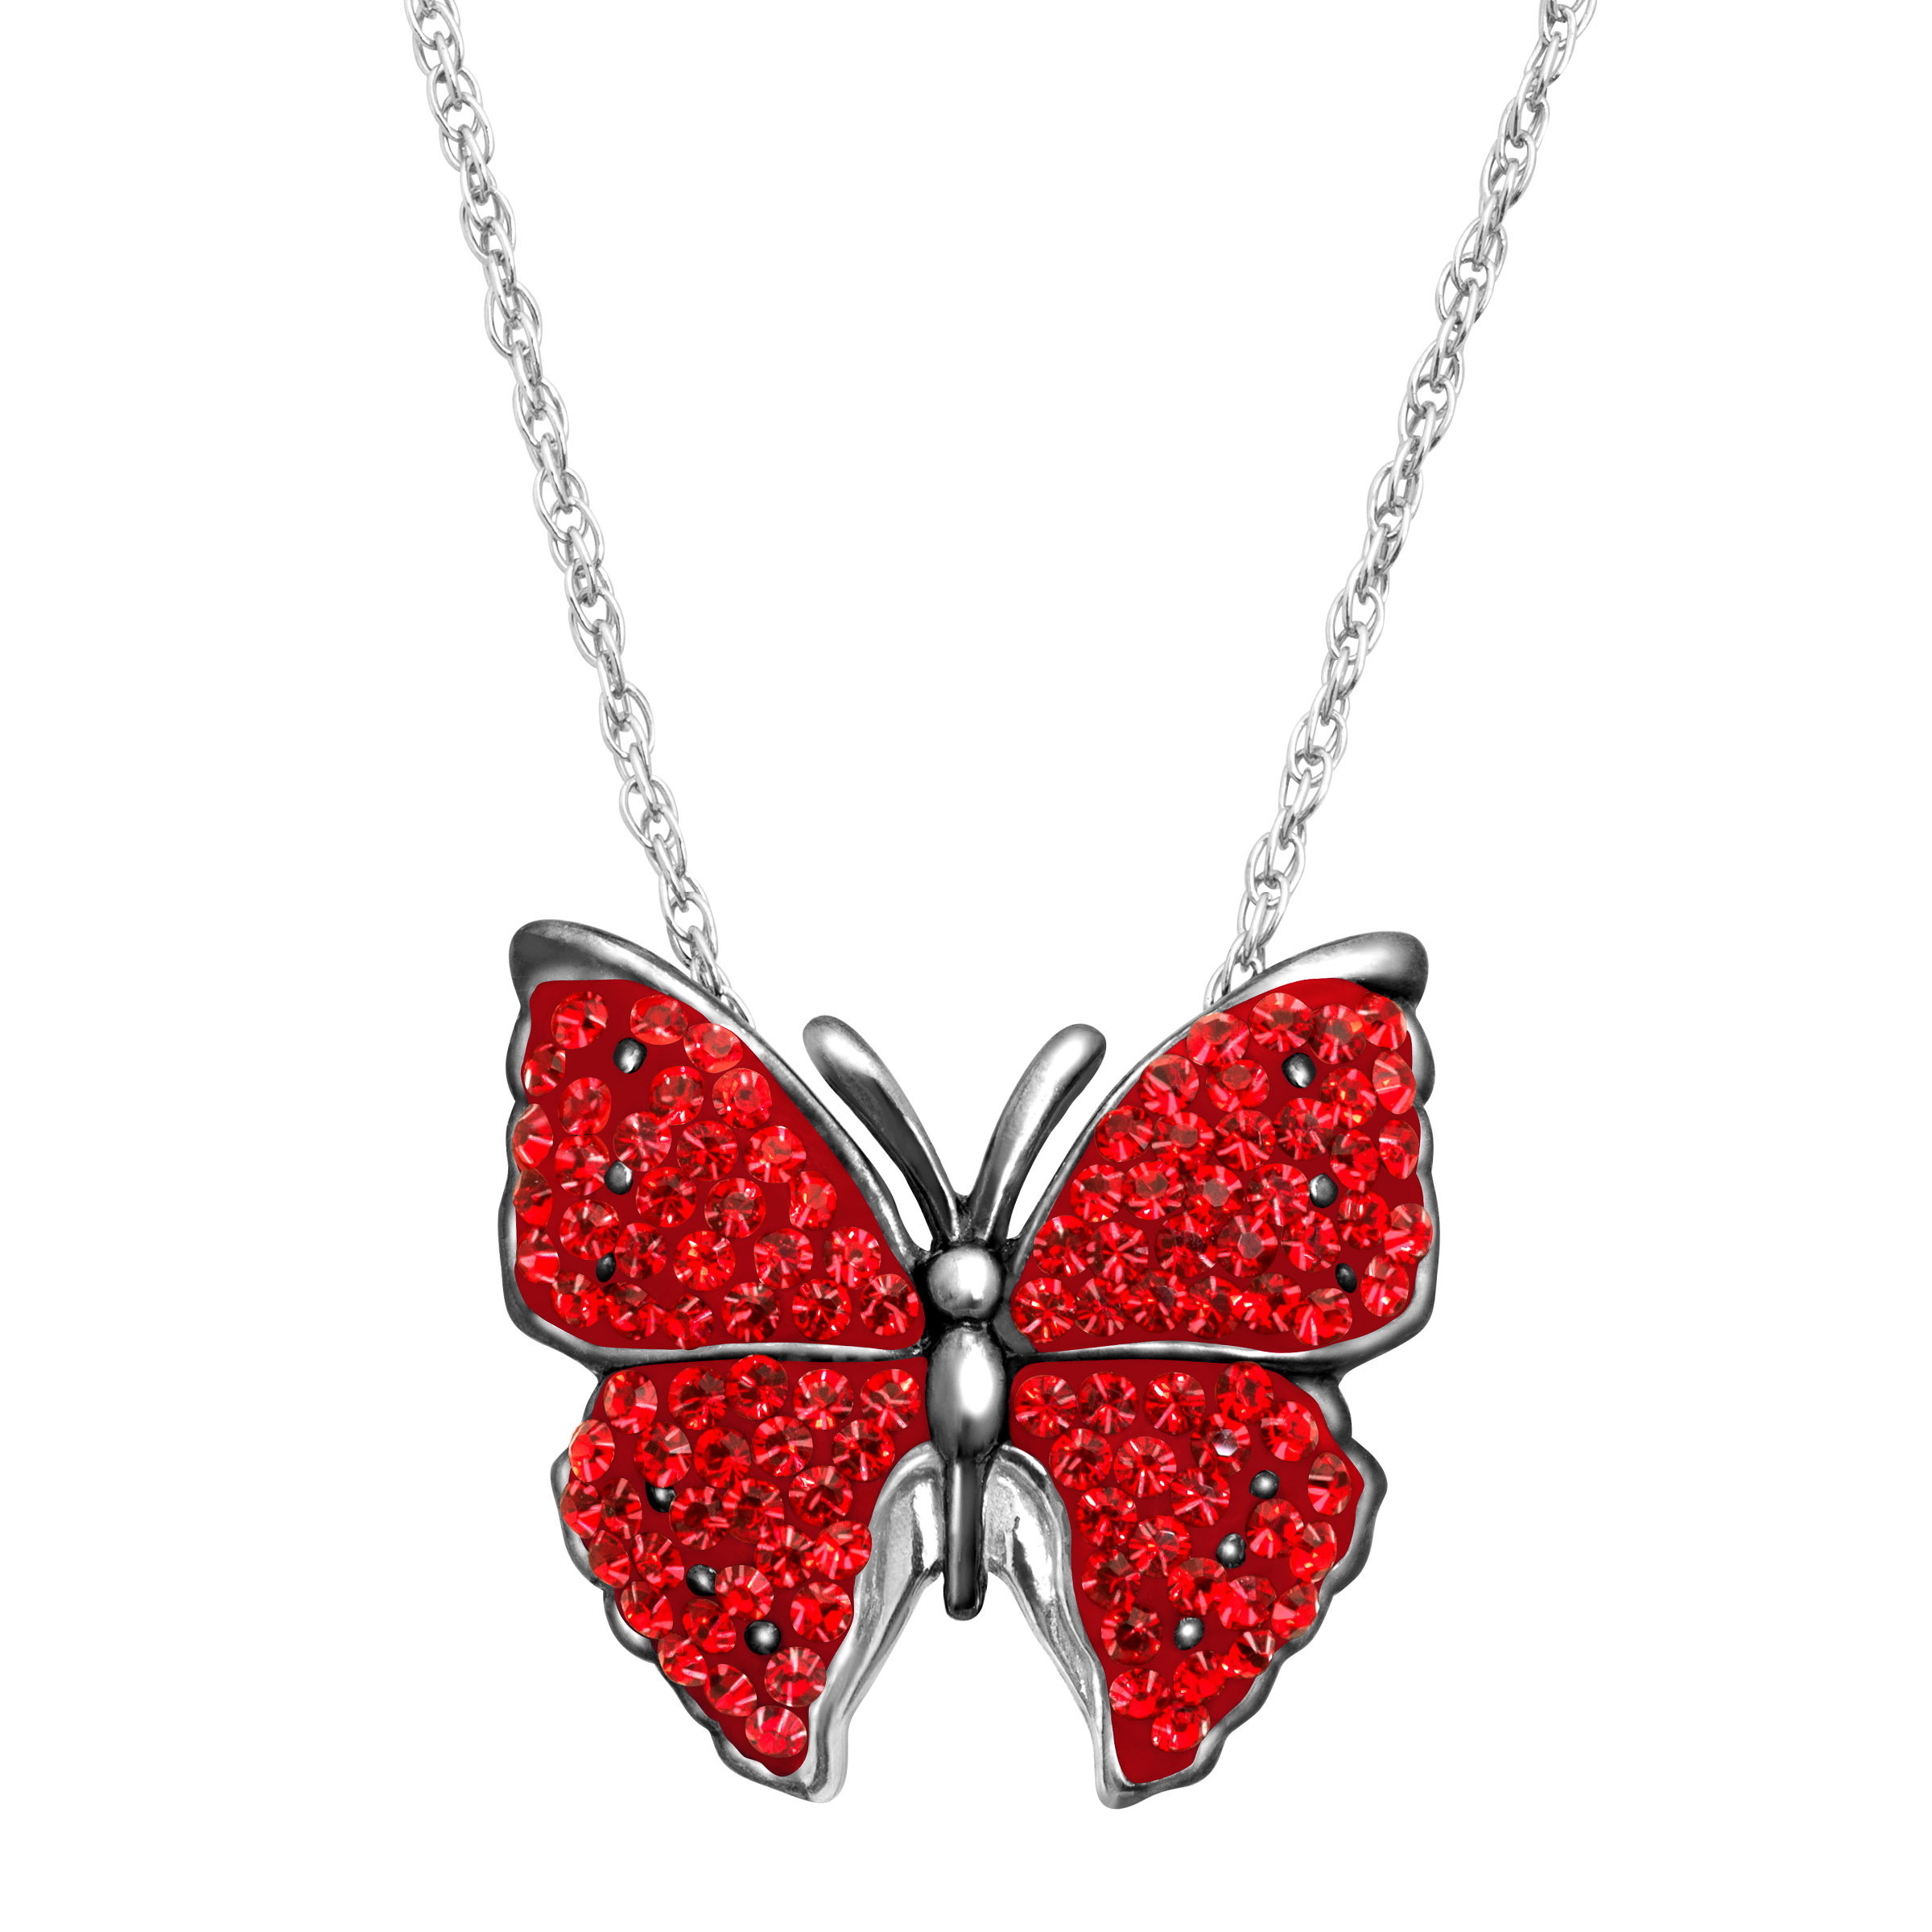 Animal Planet Butterfly Pendant Necklace with Swarovski Crystals in Sterling Silver